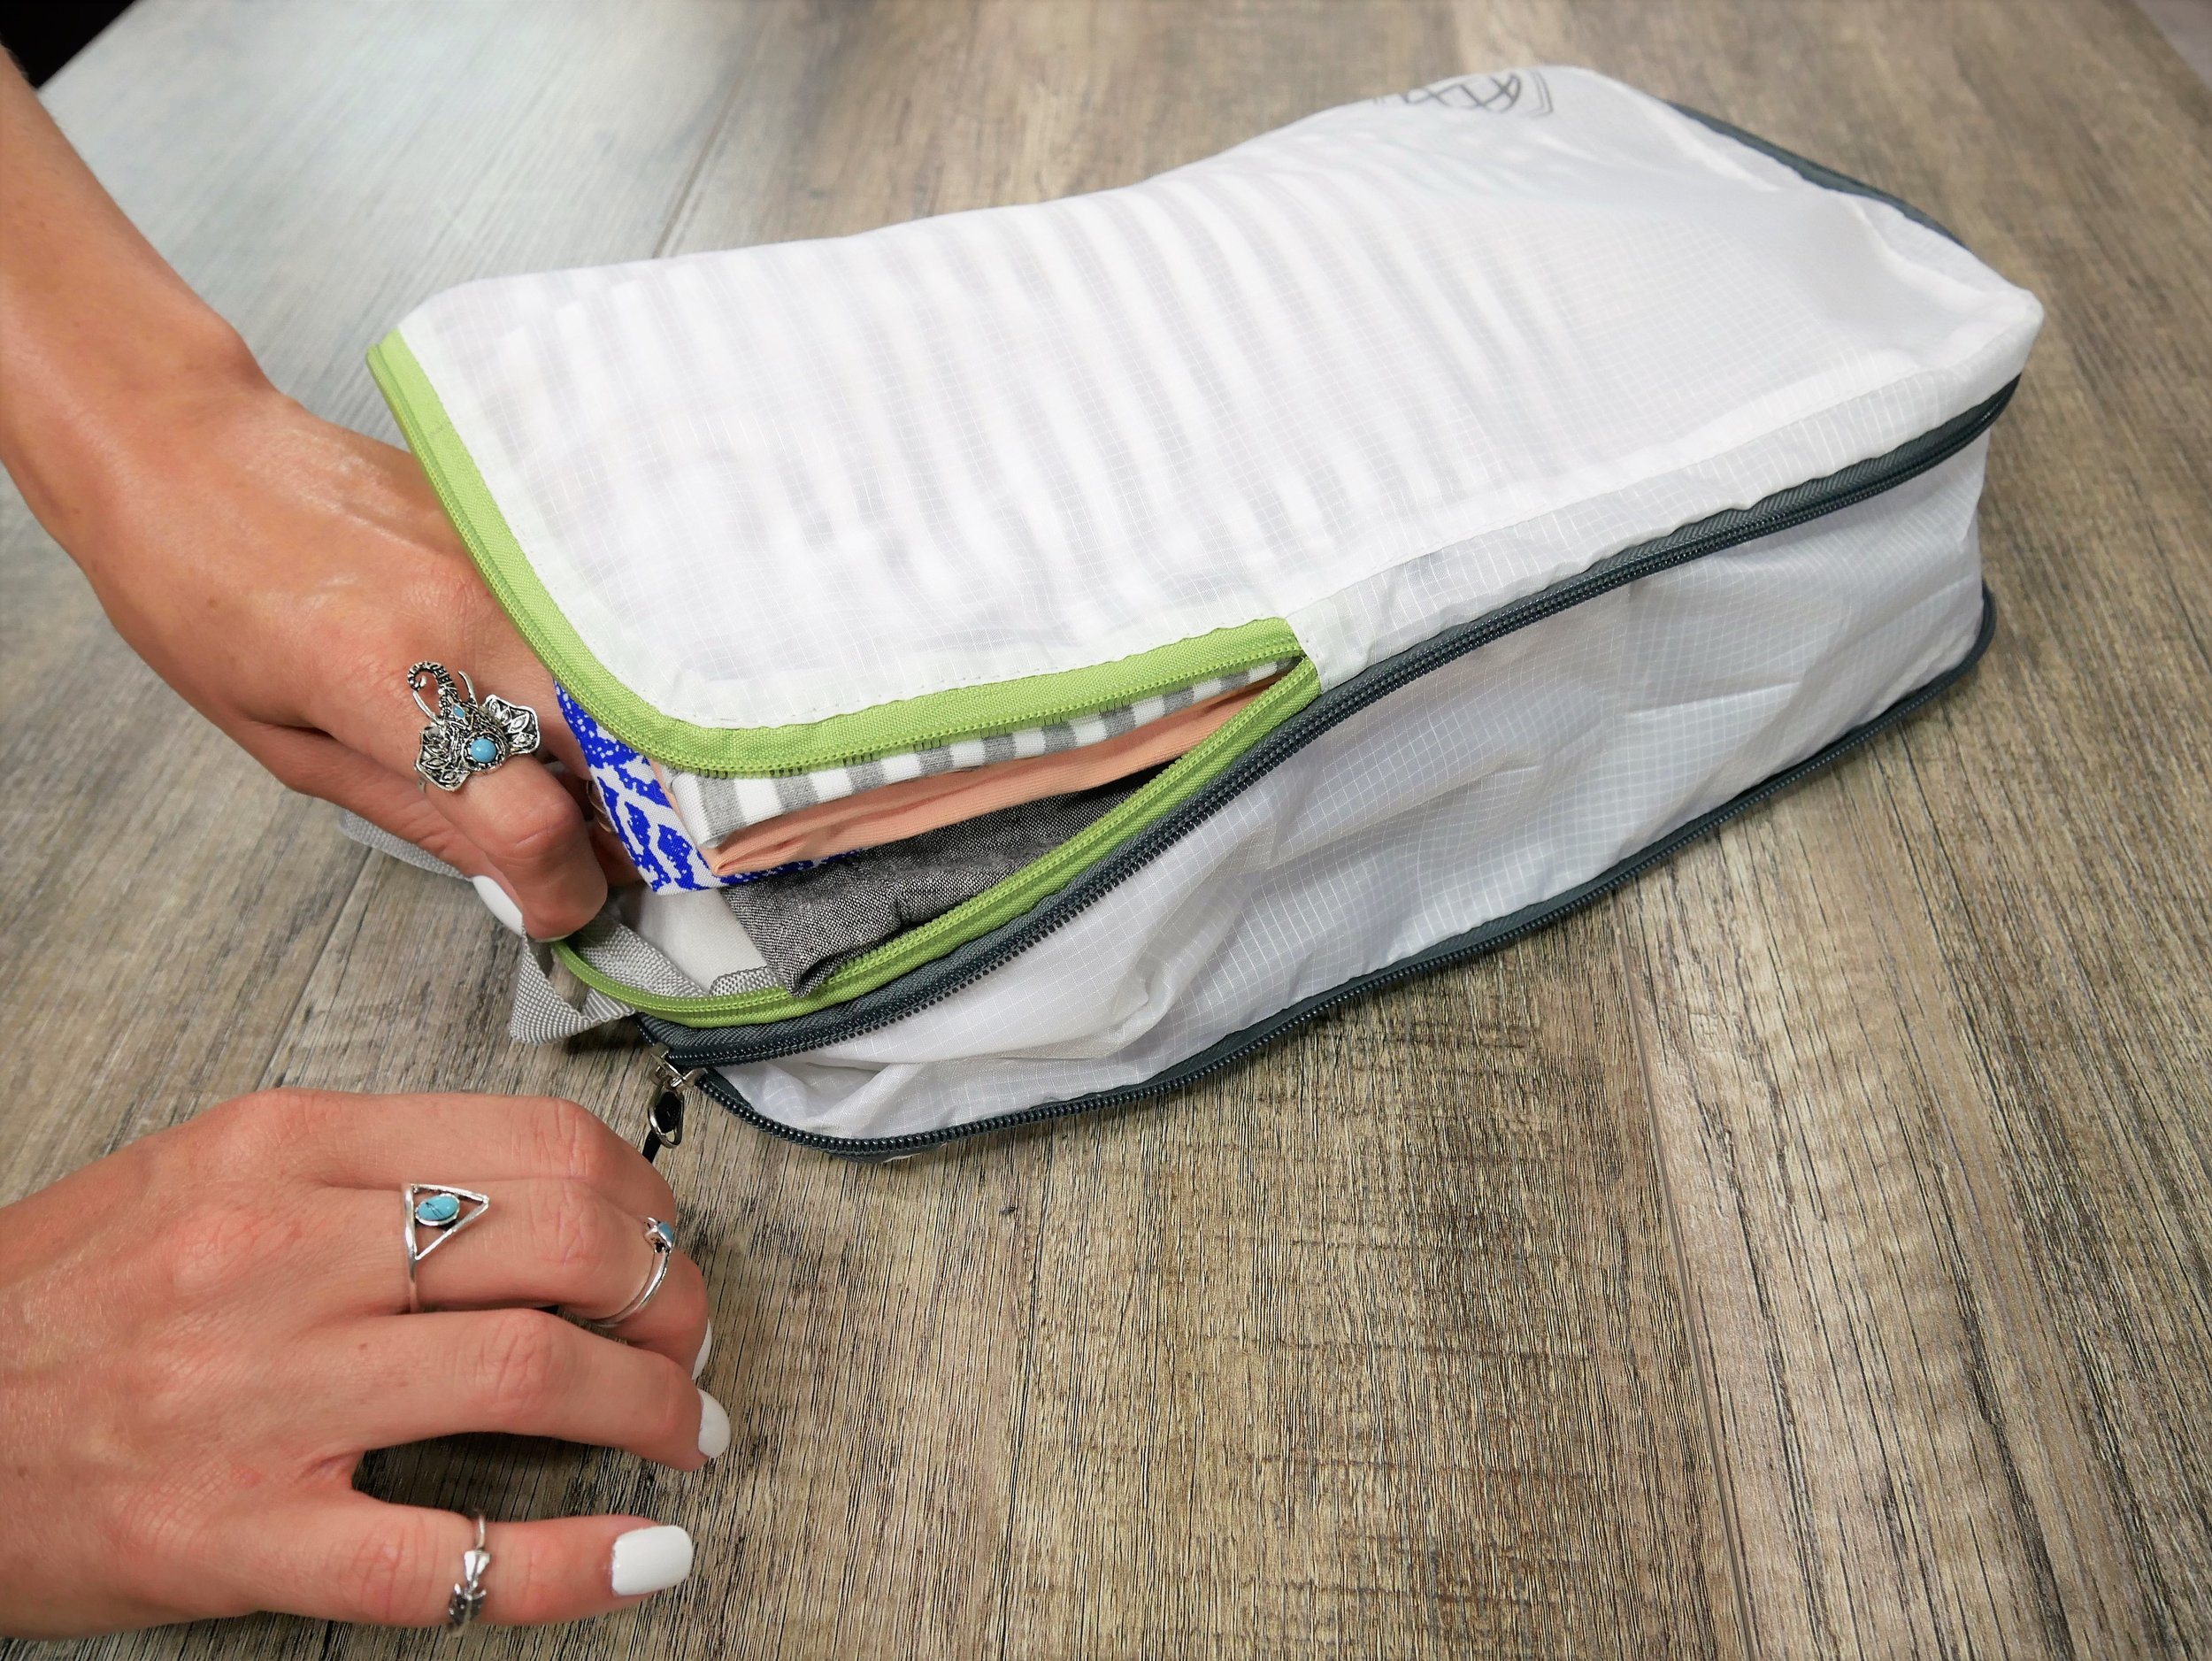 Easy to use - Compression packing cubes help you with packing your clothes by compressing the air out of them. These compressible (and expandable) cubes use a two zipper system to help eliminate the extra bulk when packing your luggage. The zippers literally compress your clothes together and eliminate wasted space.